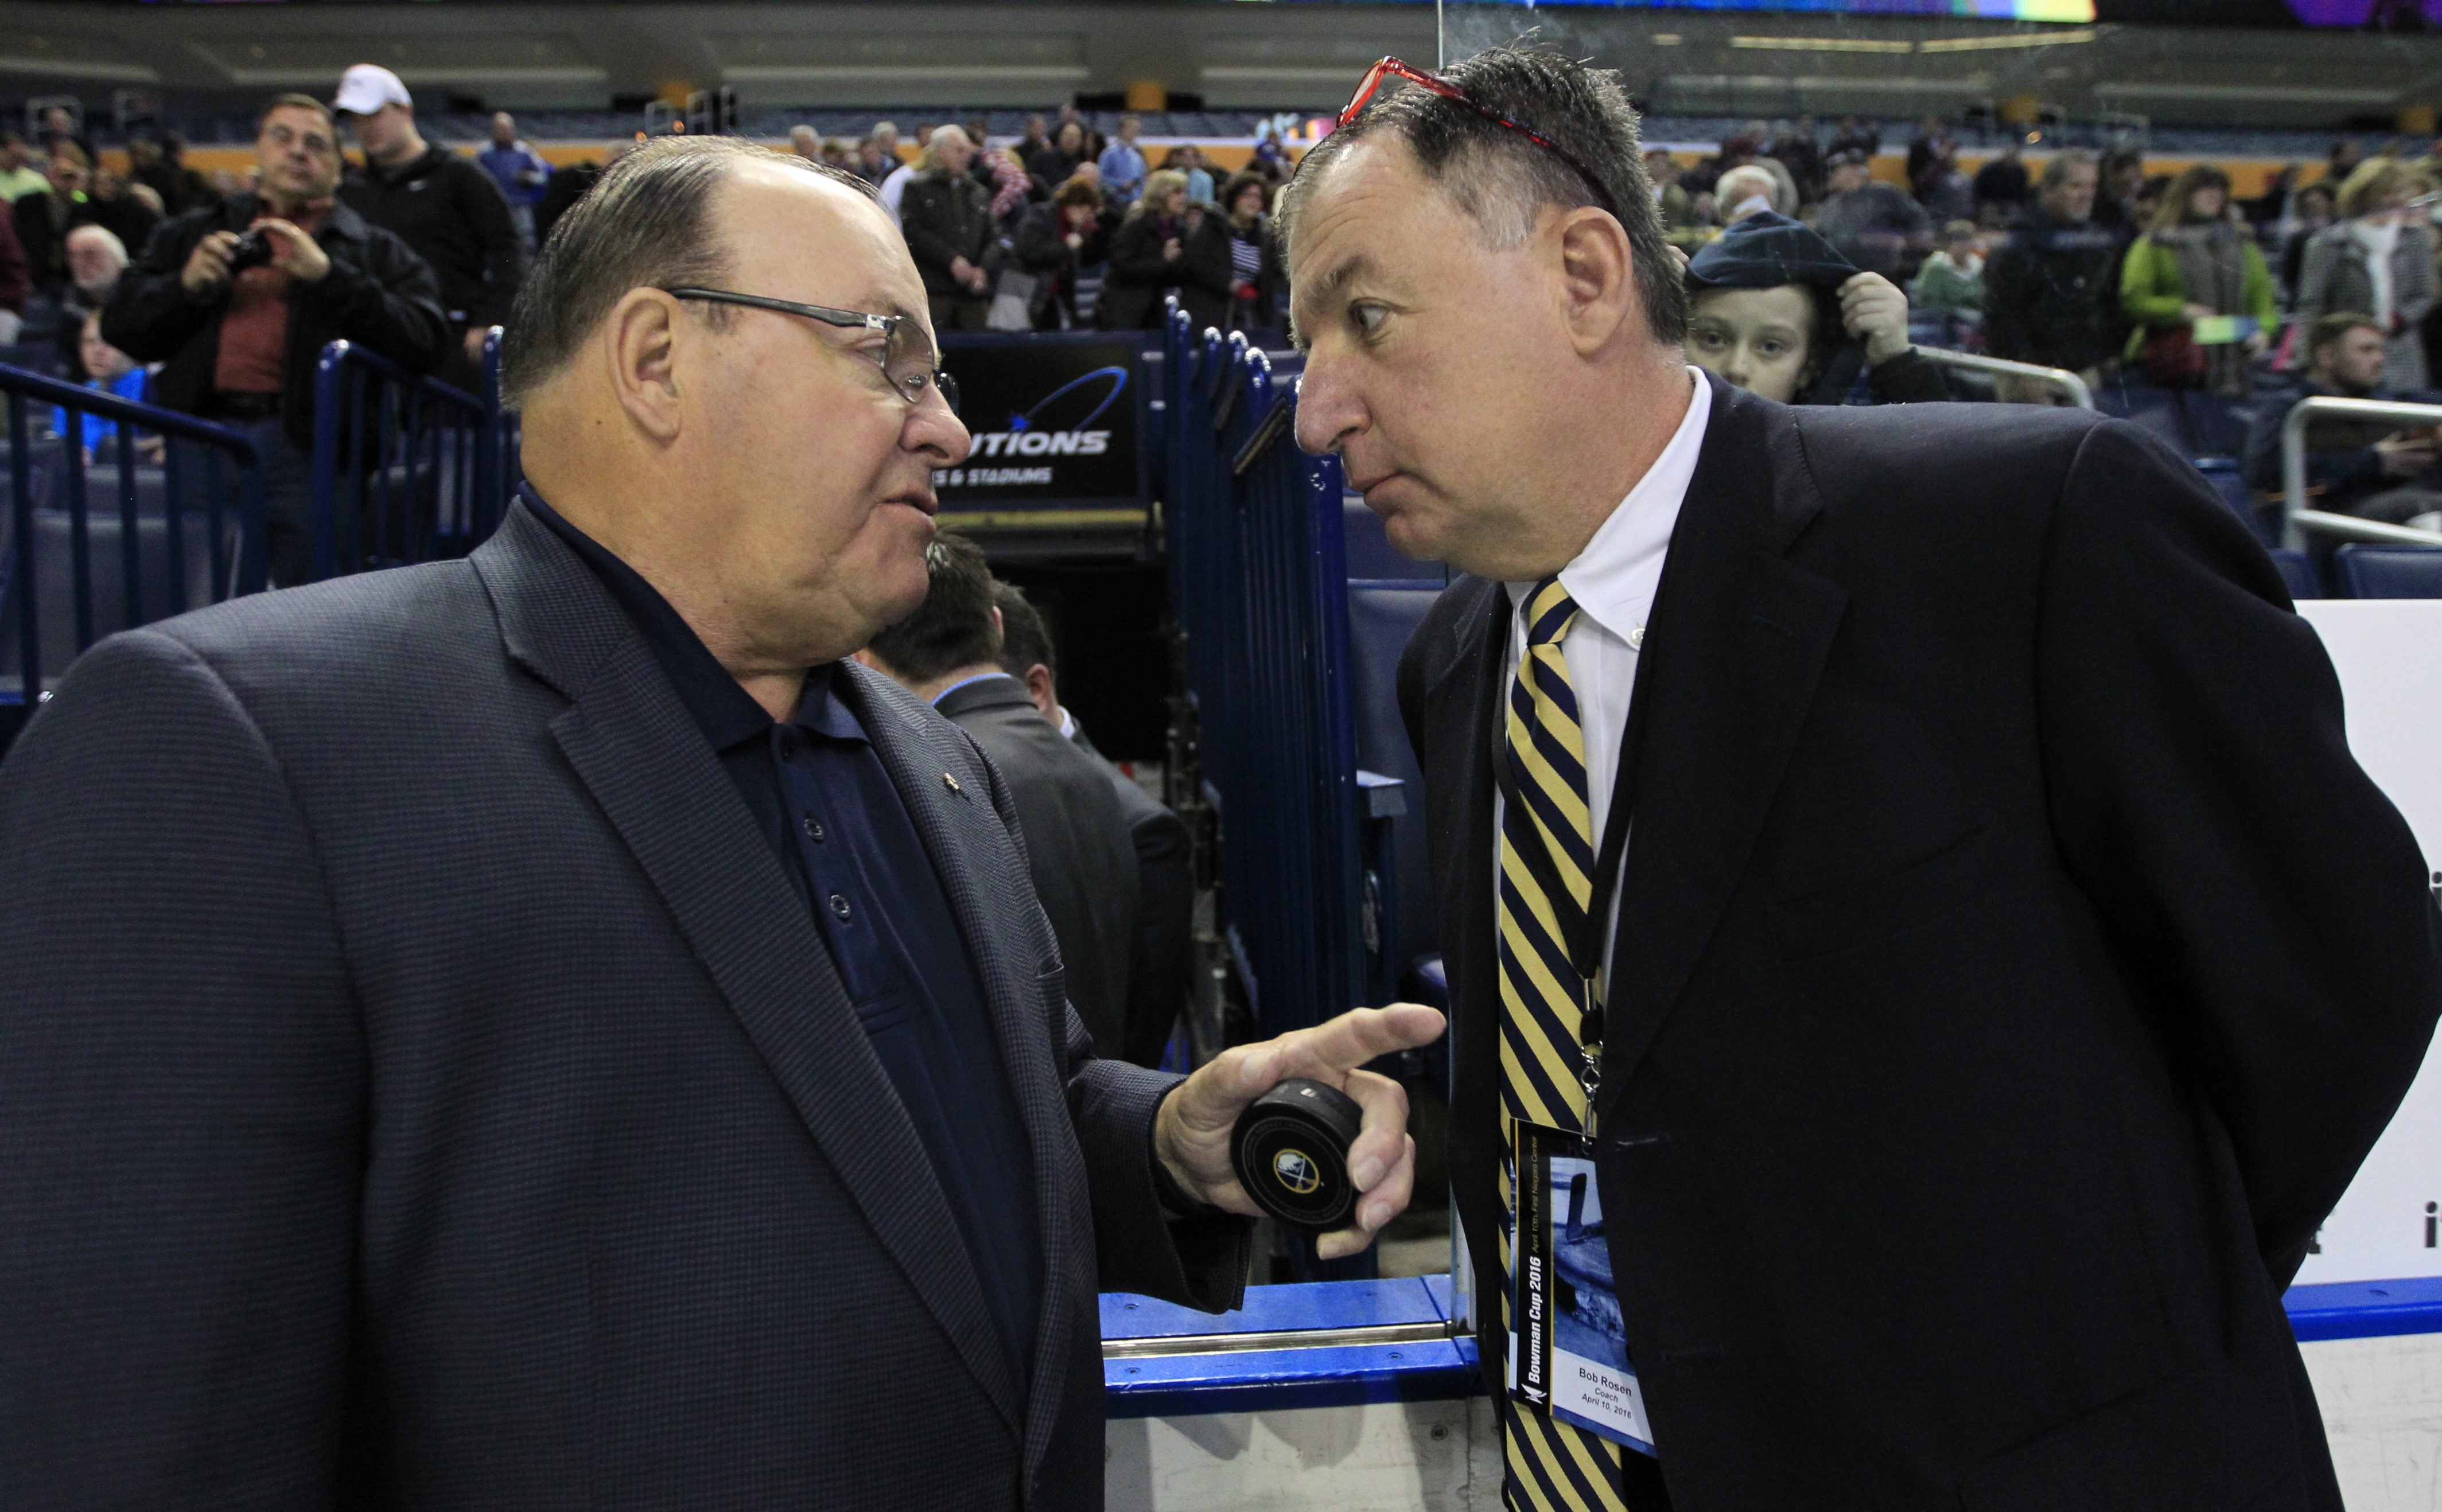 Williamsville North coach Bob Rosen, shown here speaking with NHL Hall of Fame coach Scotty Bowman, left, last April, has guided the Spartans to four state championships. North is making its ninth state final four appearance in 17 years Saturday when it faces defending champion Mamaroneck. (Harry Scull Jr./Buffalo News file photo)